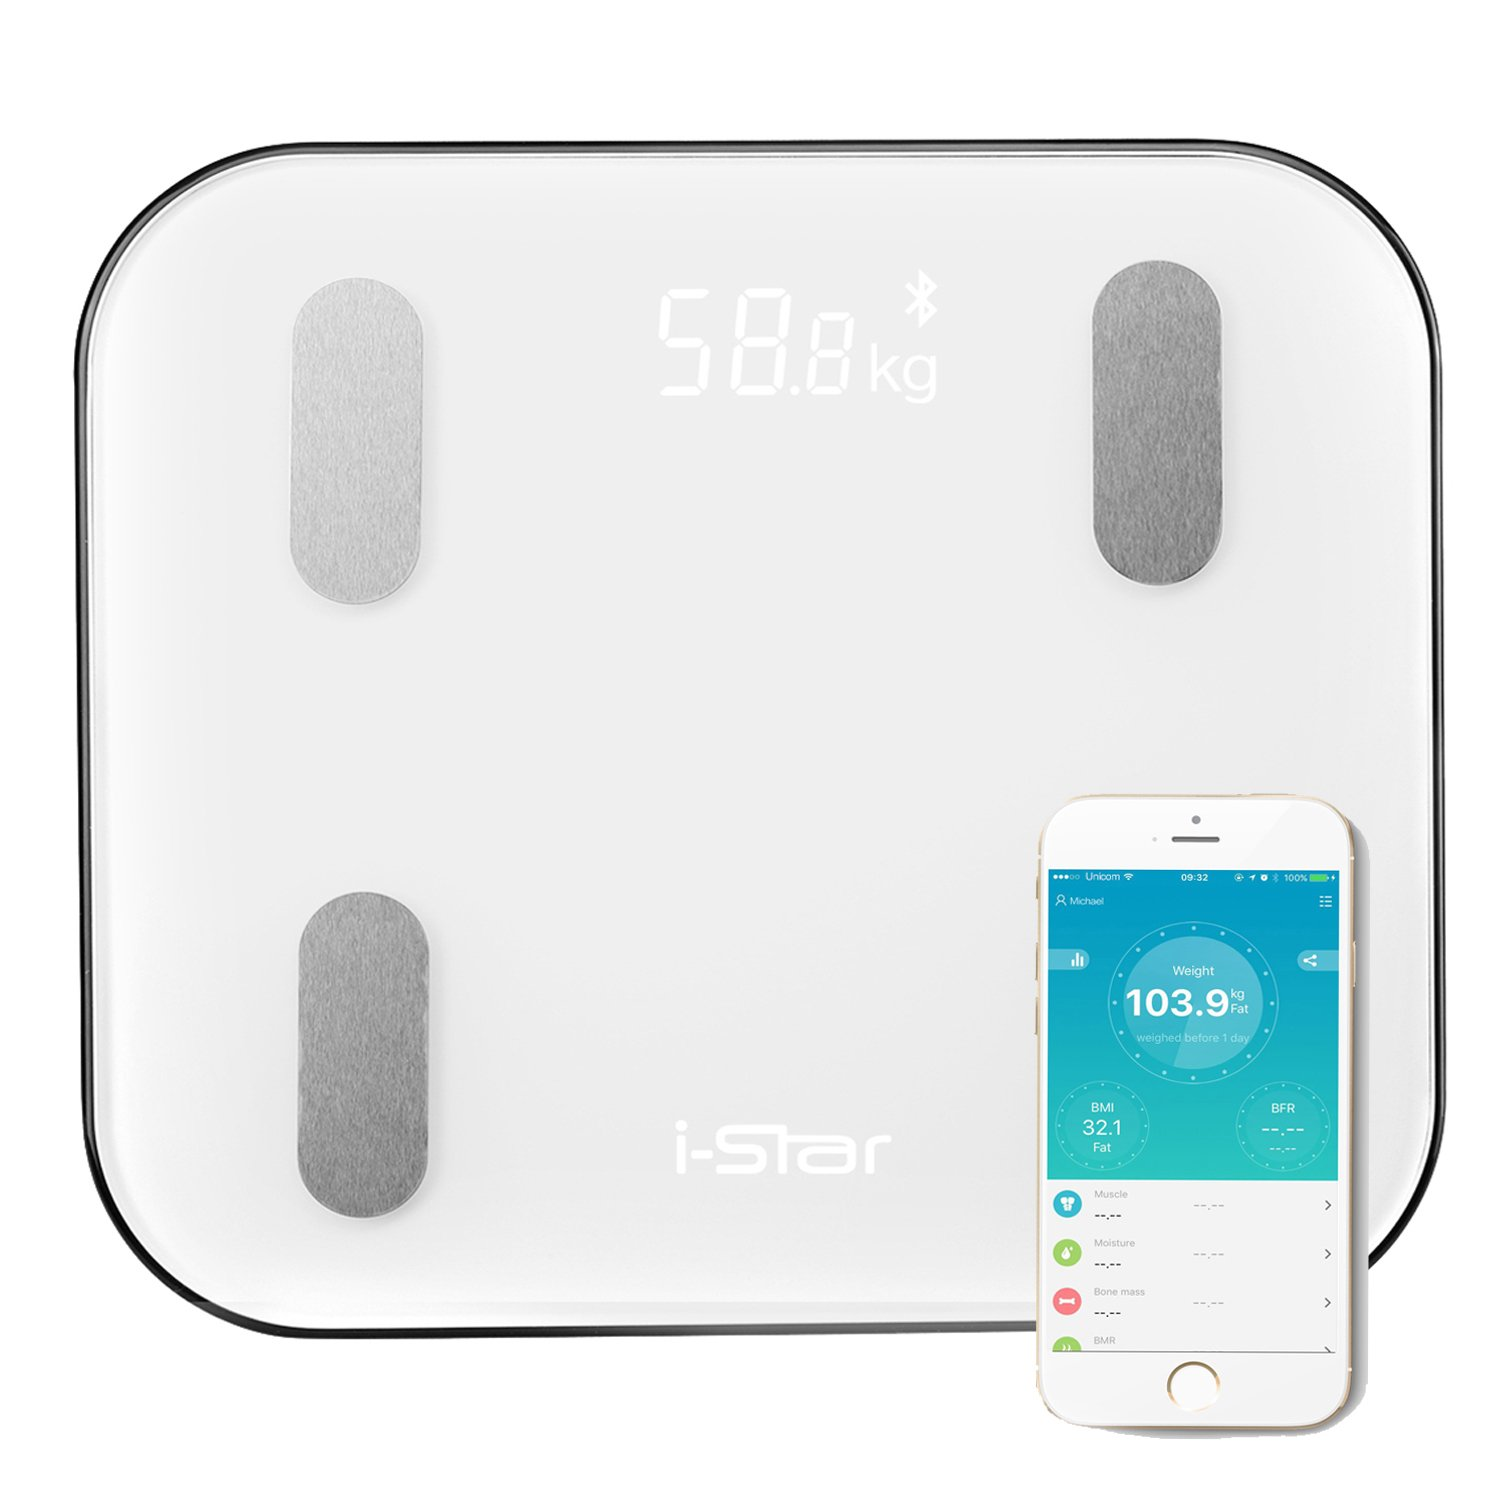 Bluetooth Body Fat Scale,i-Star Wireless Digital Smart Full Body Weight Composition Analyzer, Health Monitor with iOS and Android,Bathroom Use with Large Backlit Display,White … White … TA-11-004